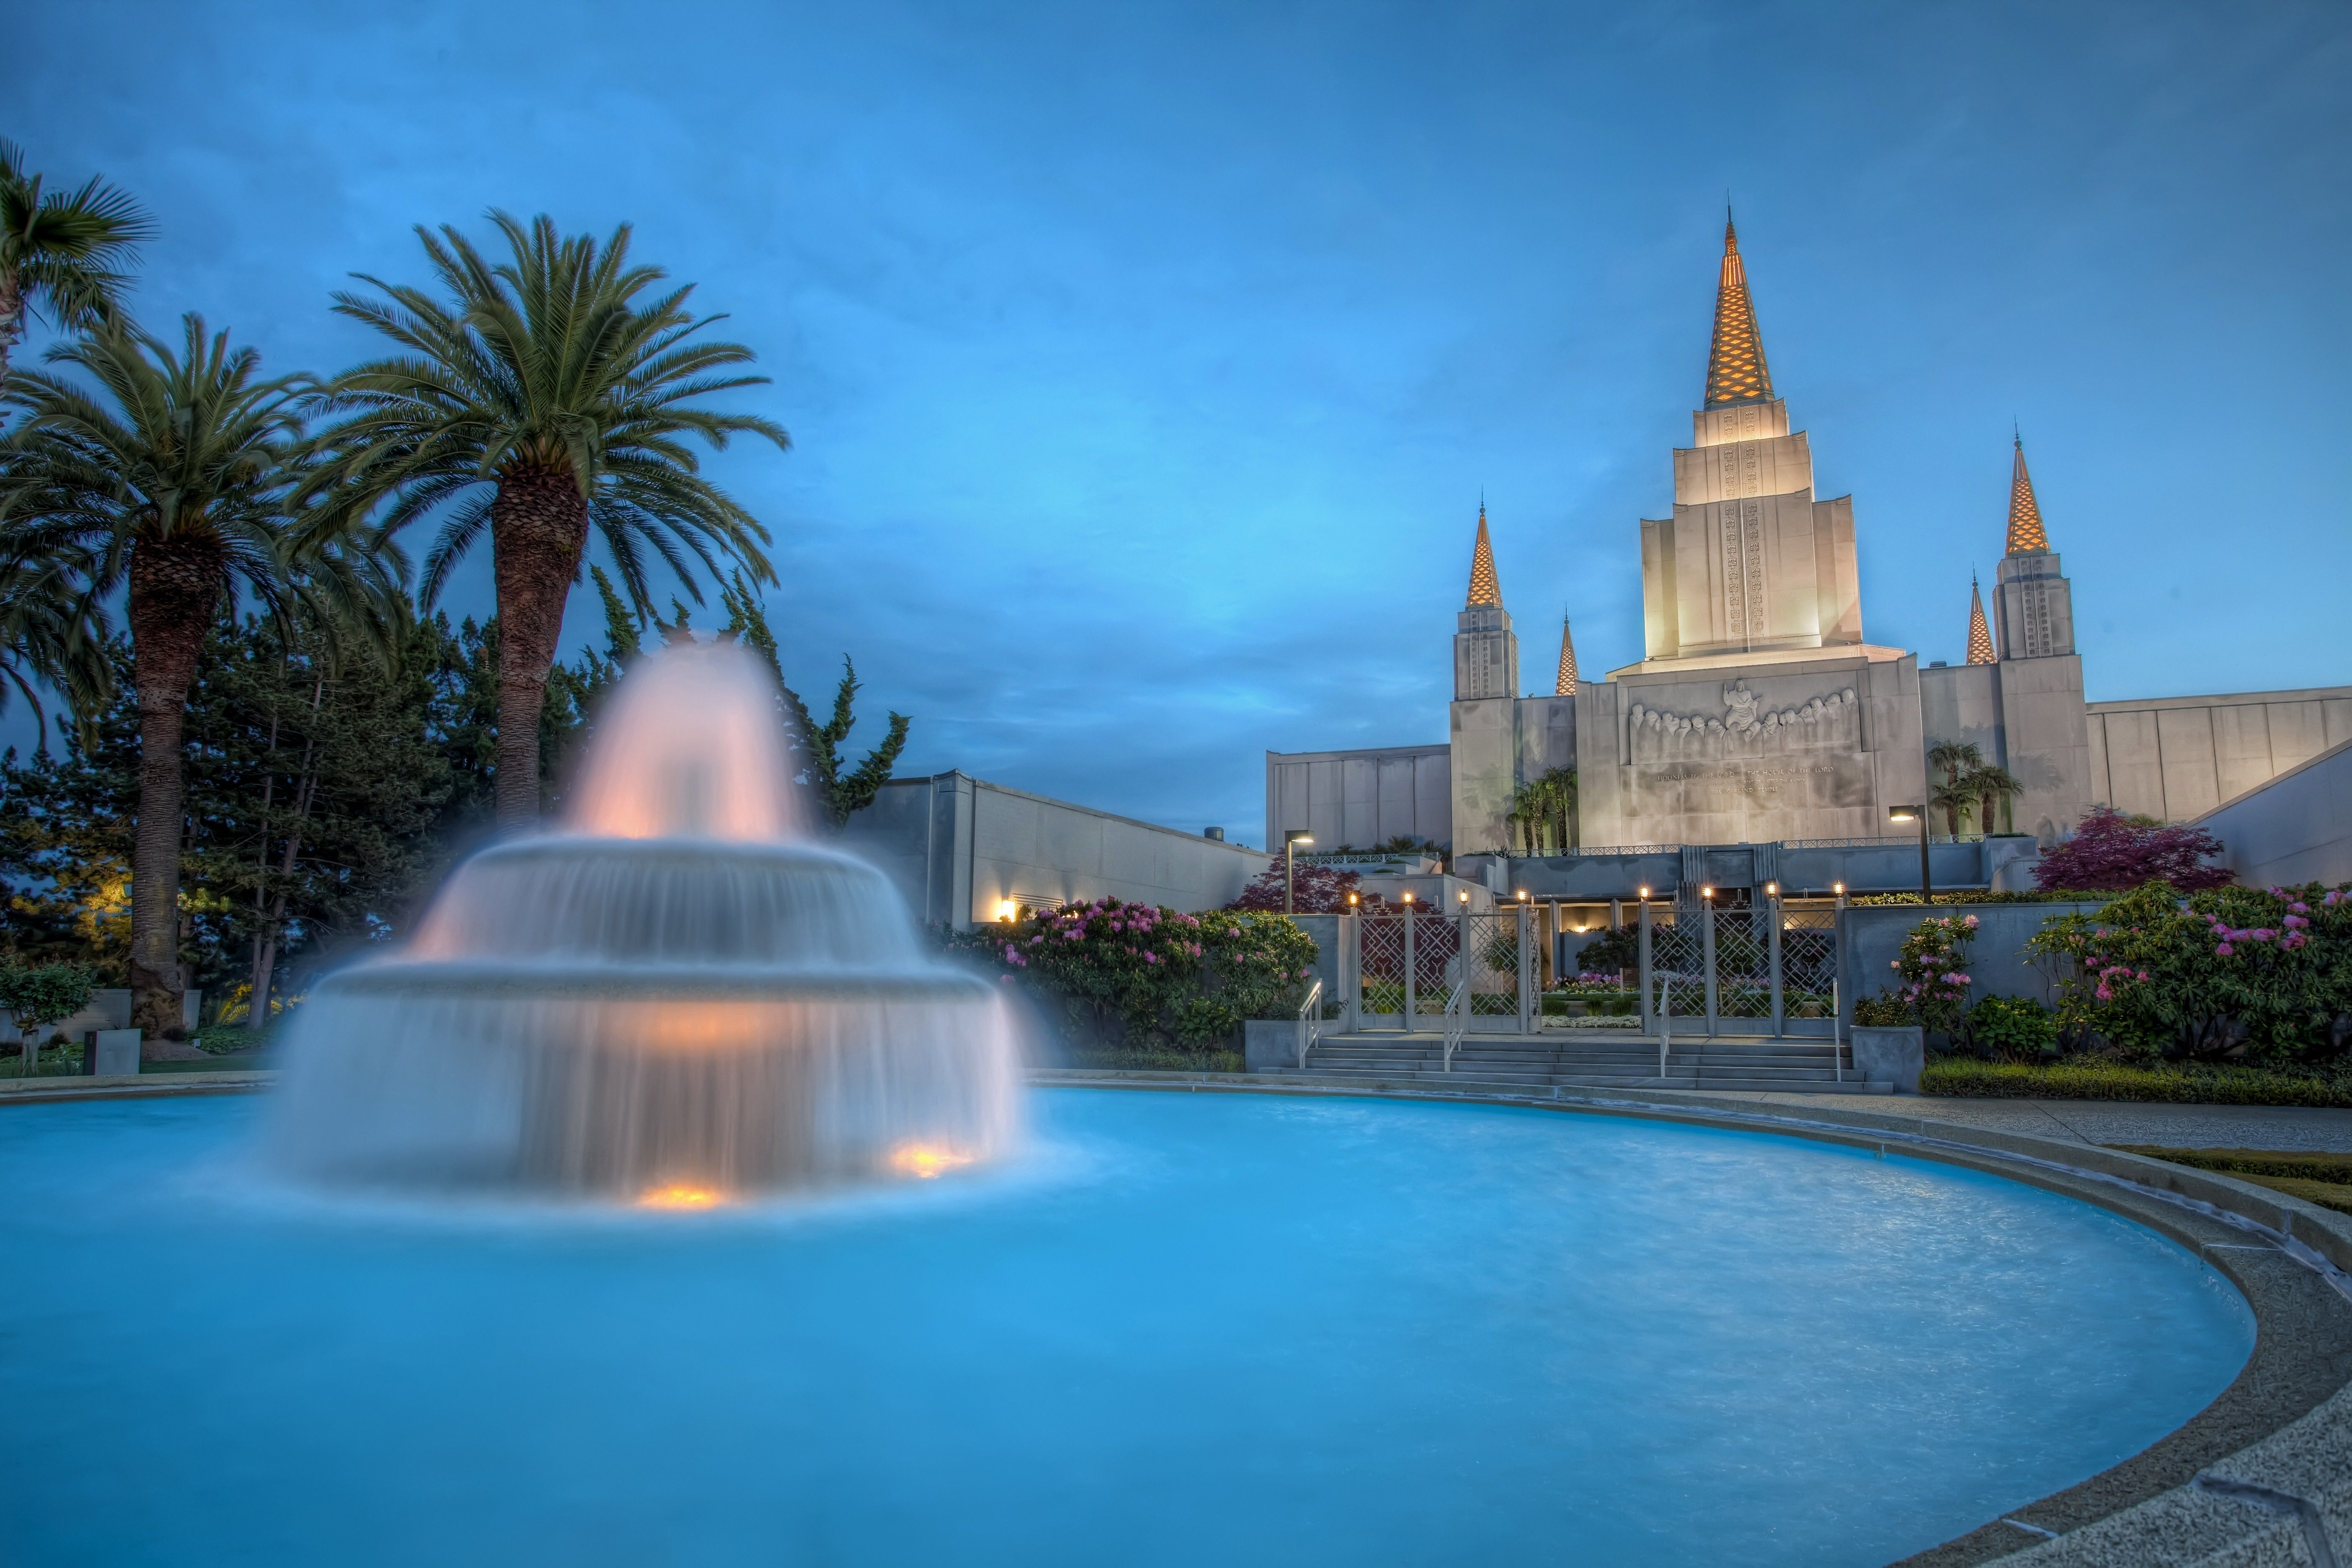 The Oakland California Temple fountain, including the entrance and scenery.